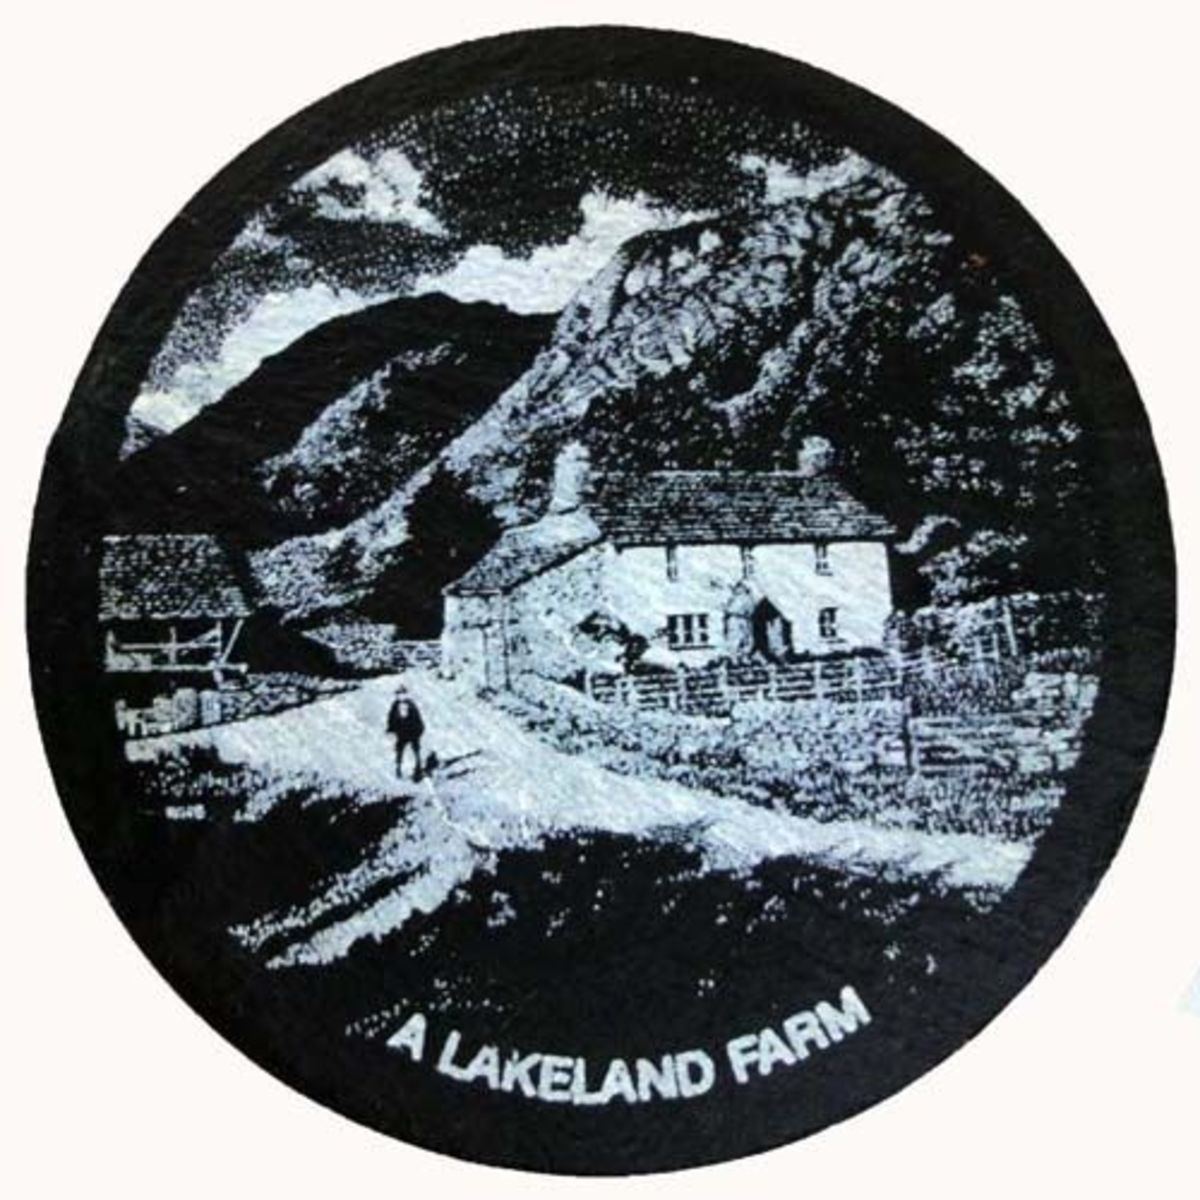 Slate coaser of Lakeland Farm in the Lake District, England.